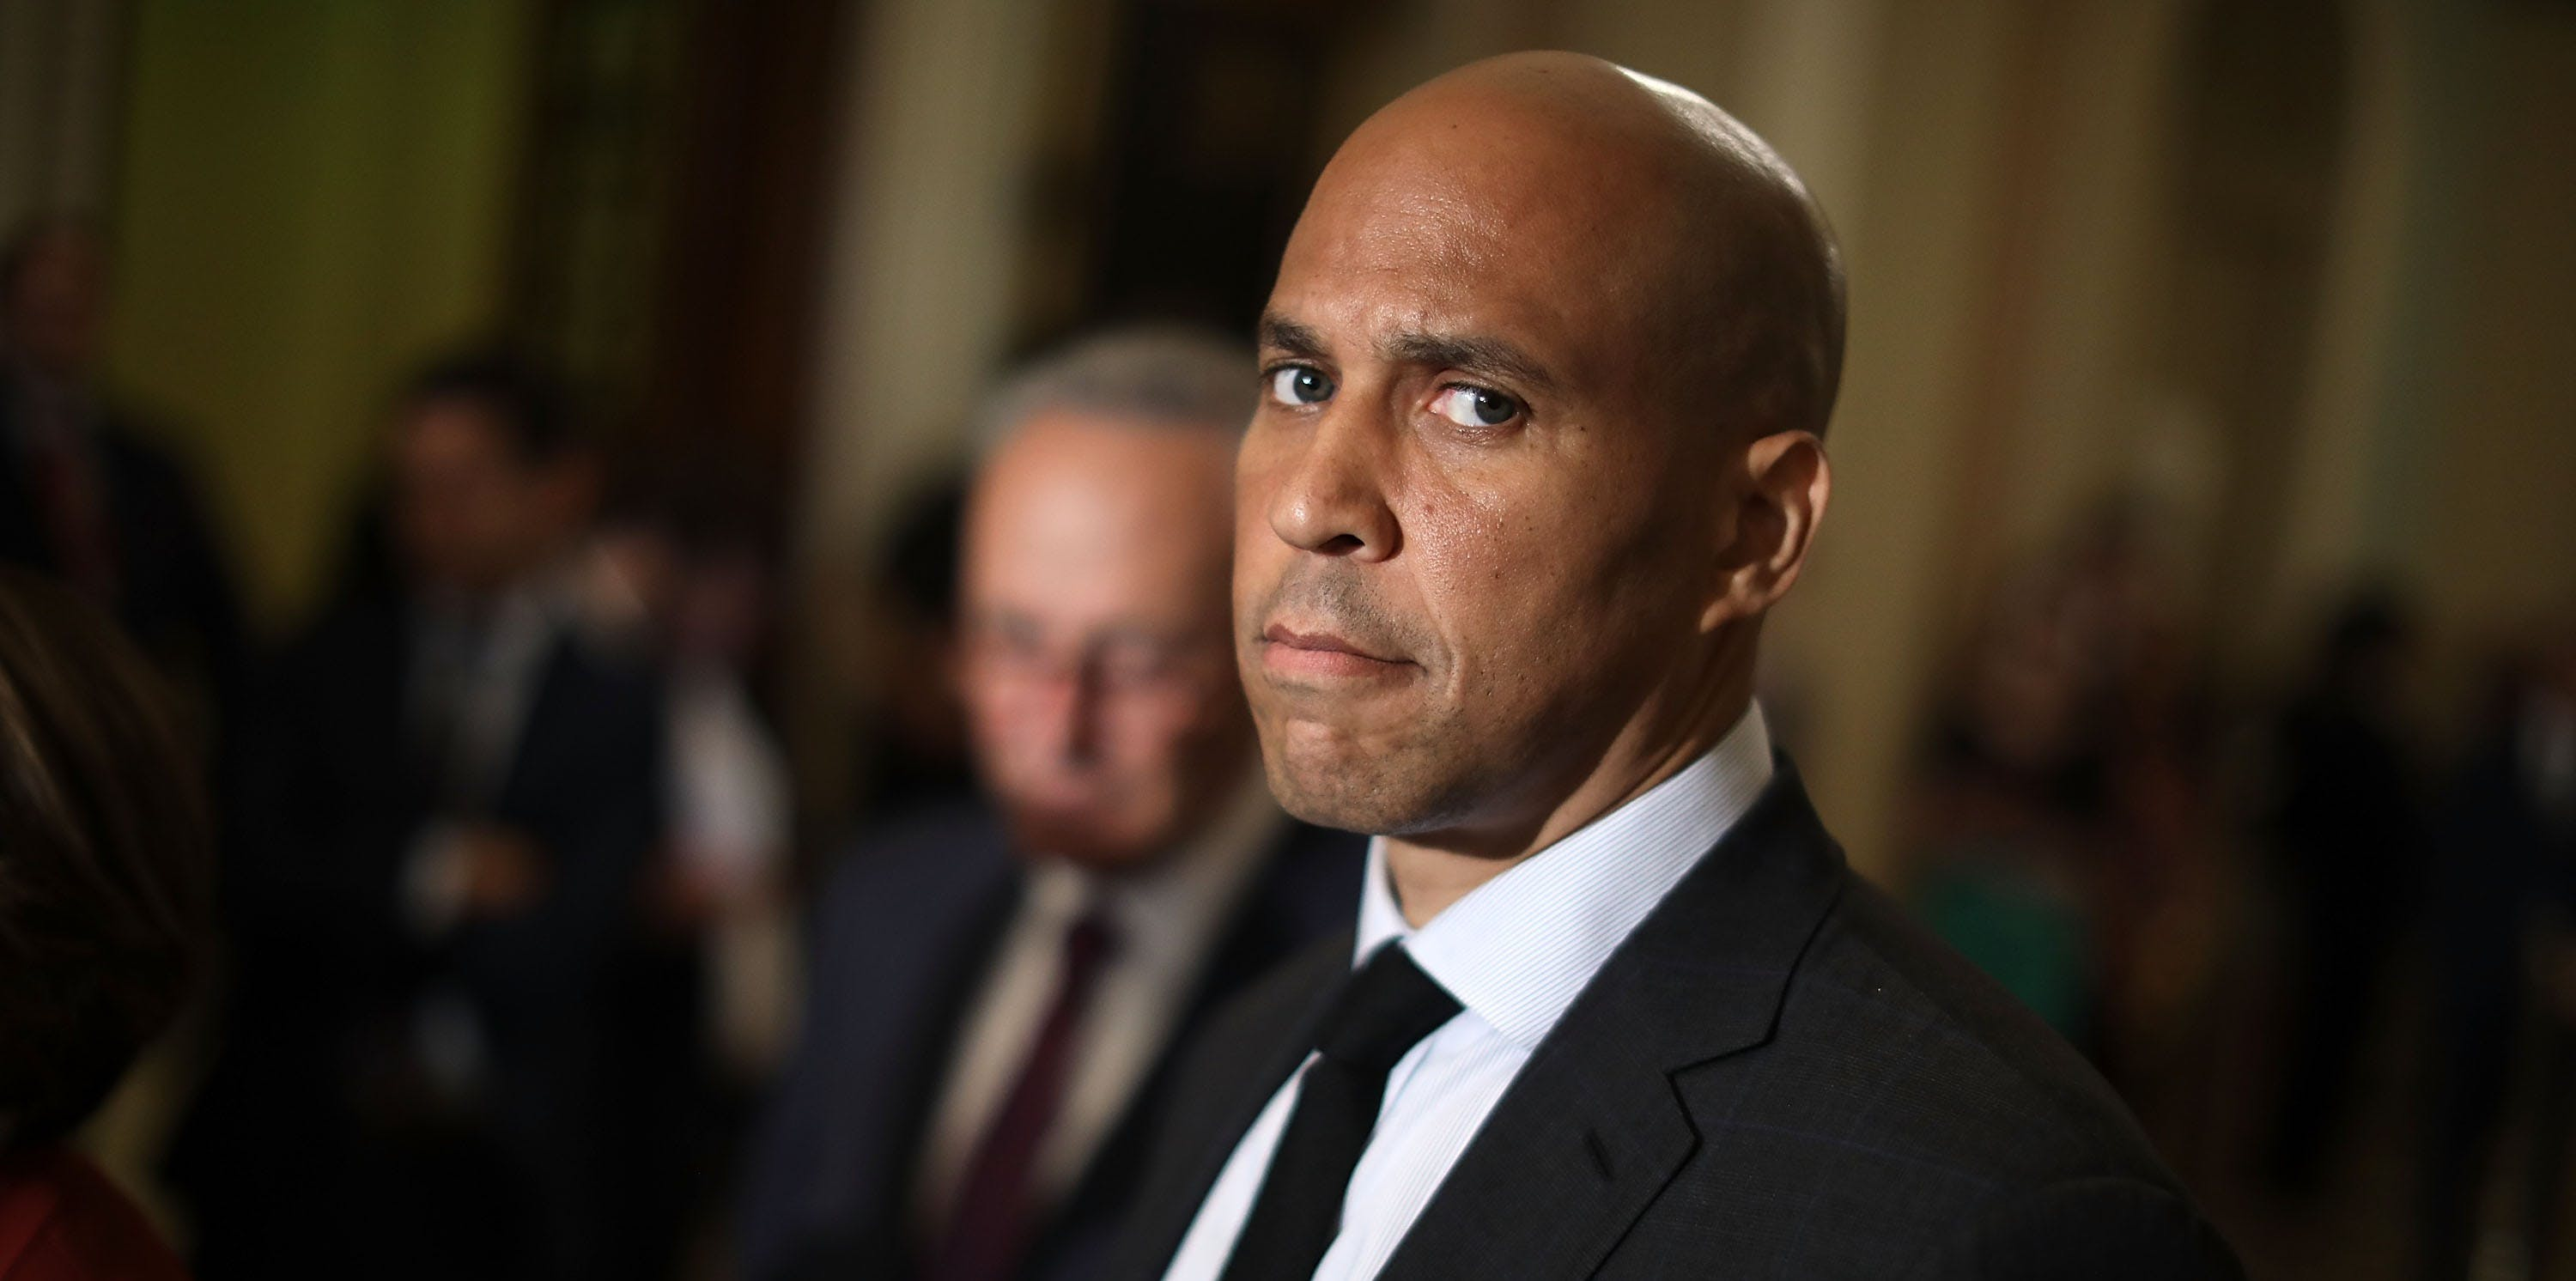 Cory Booker Claims He Didn't Know He Held a Pro-Palestine